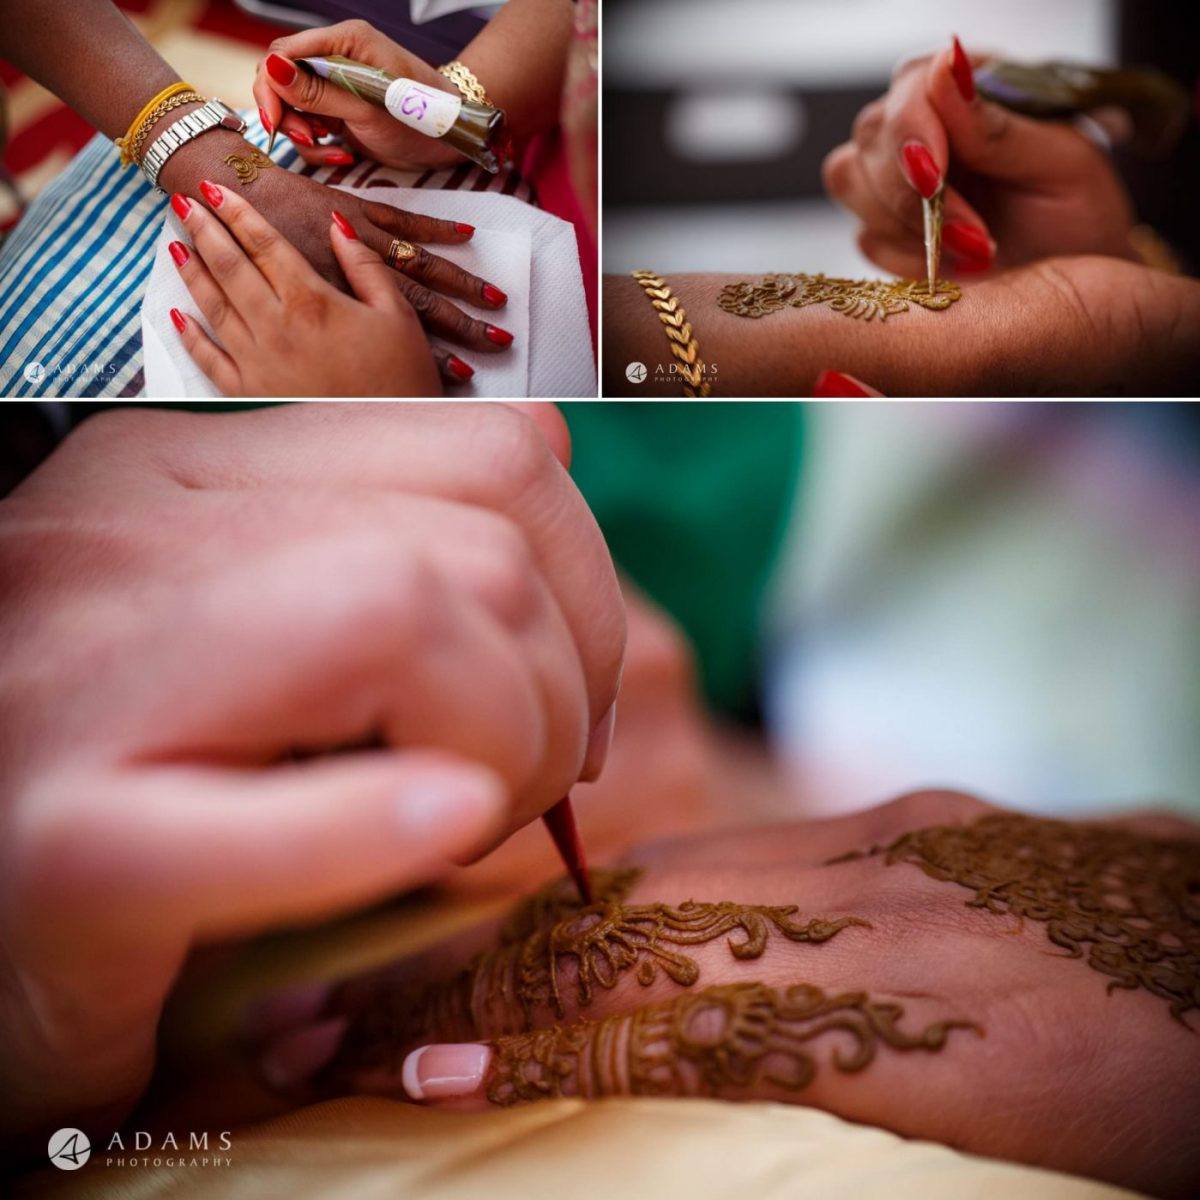 tamil tatoos which are made before the wedding